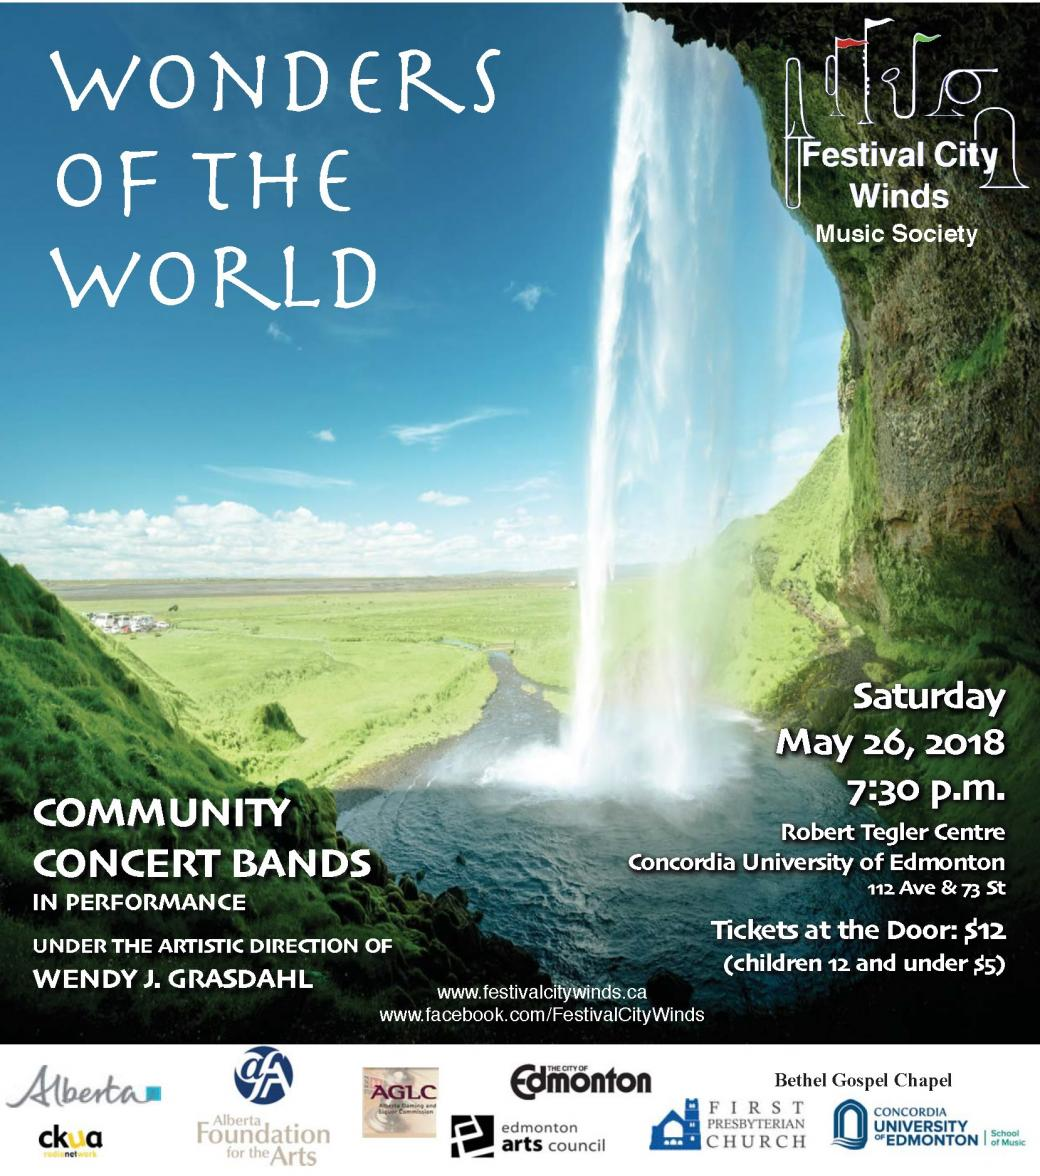 Wonders of the World - Festival City Winds Concert